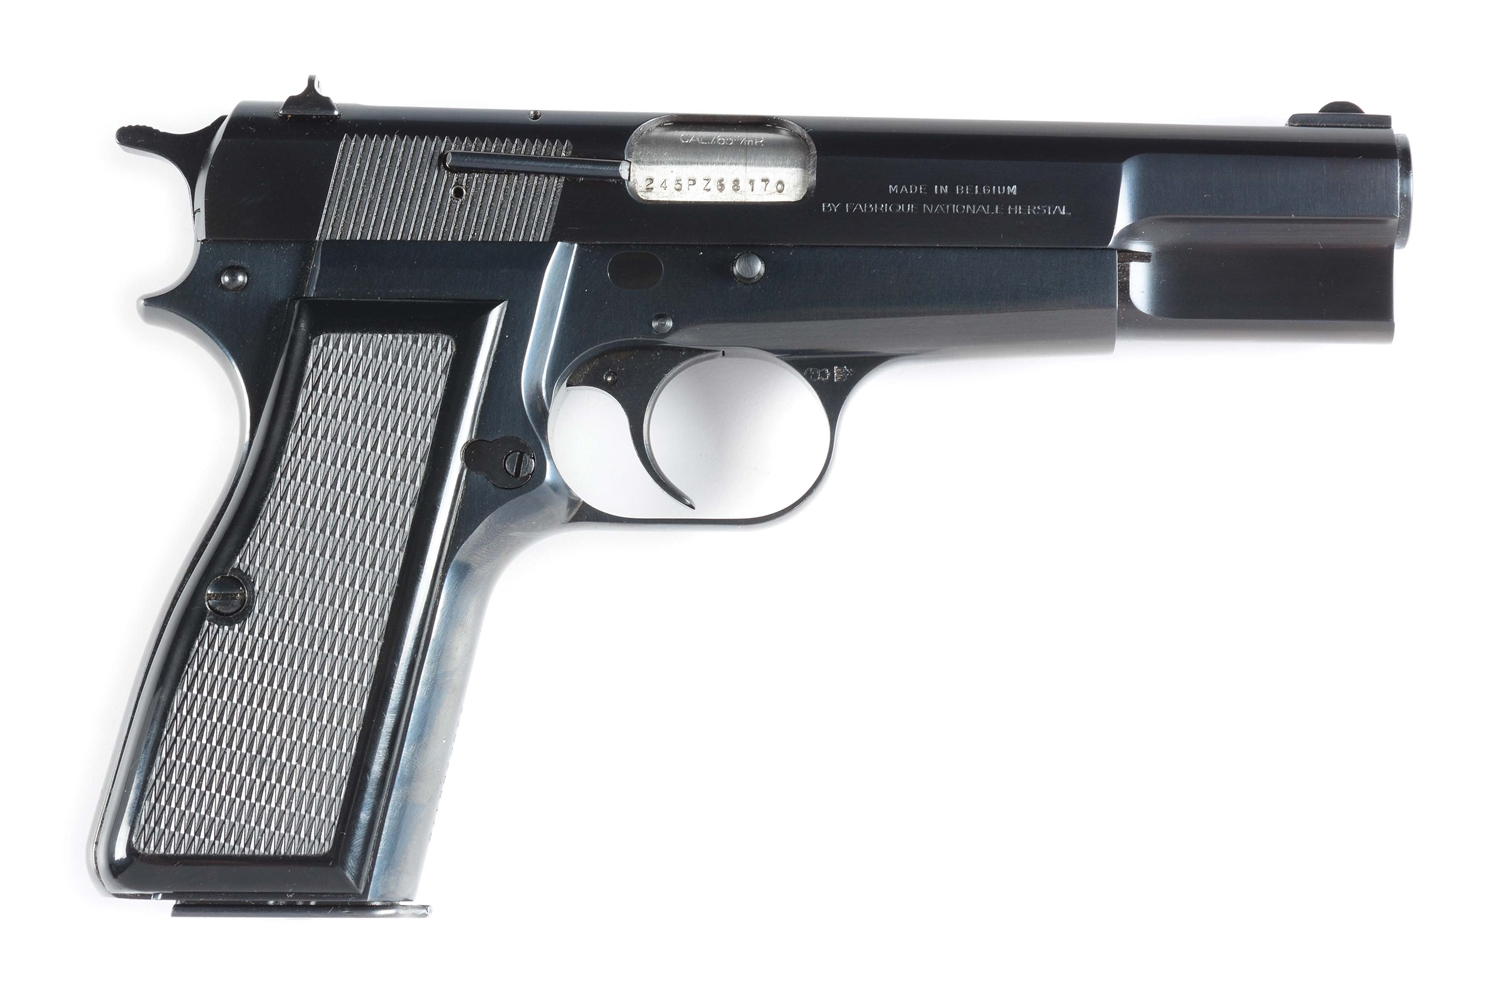 (M) Scarce Browning Hi-Power Semi-Automatic Pistol in 7.65mm.